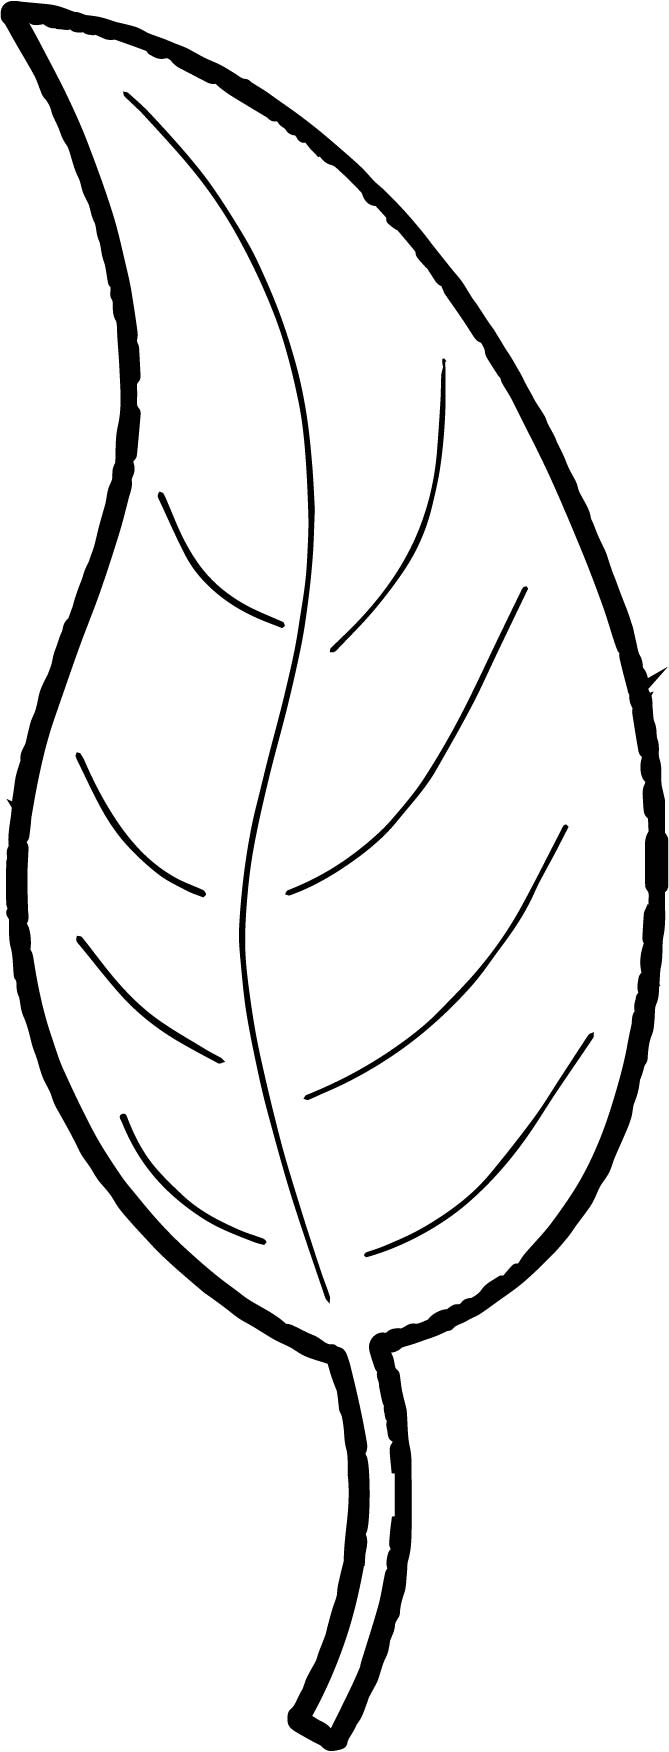 free colouring pictures autumn leaves autumn colouring pages free leaves autumn pictures colouring